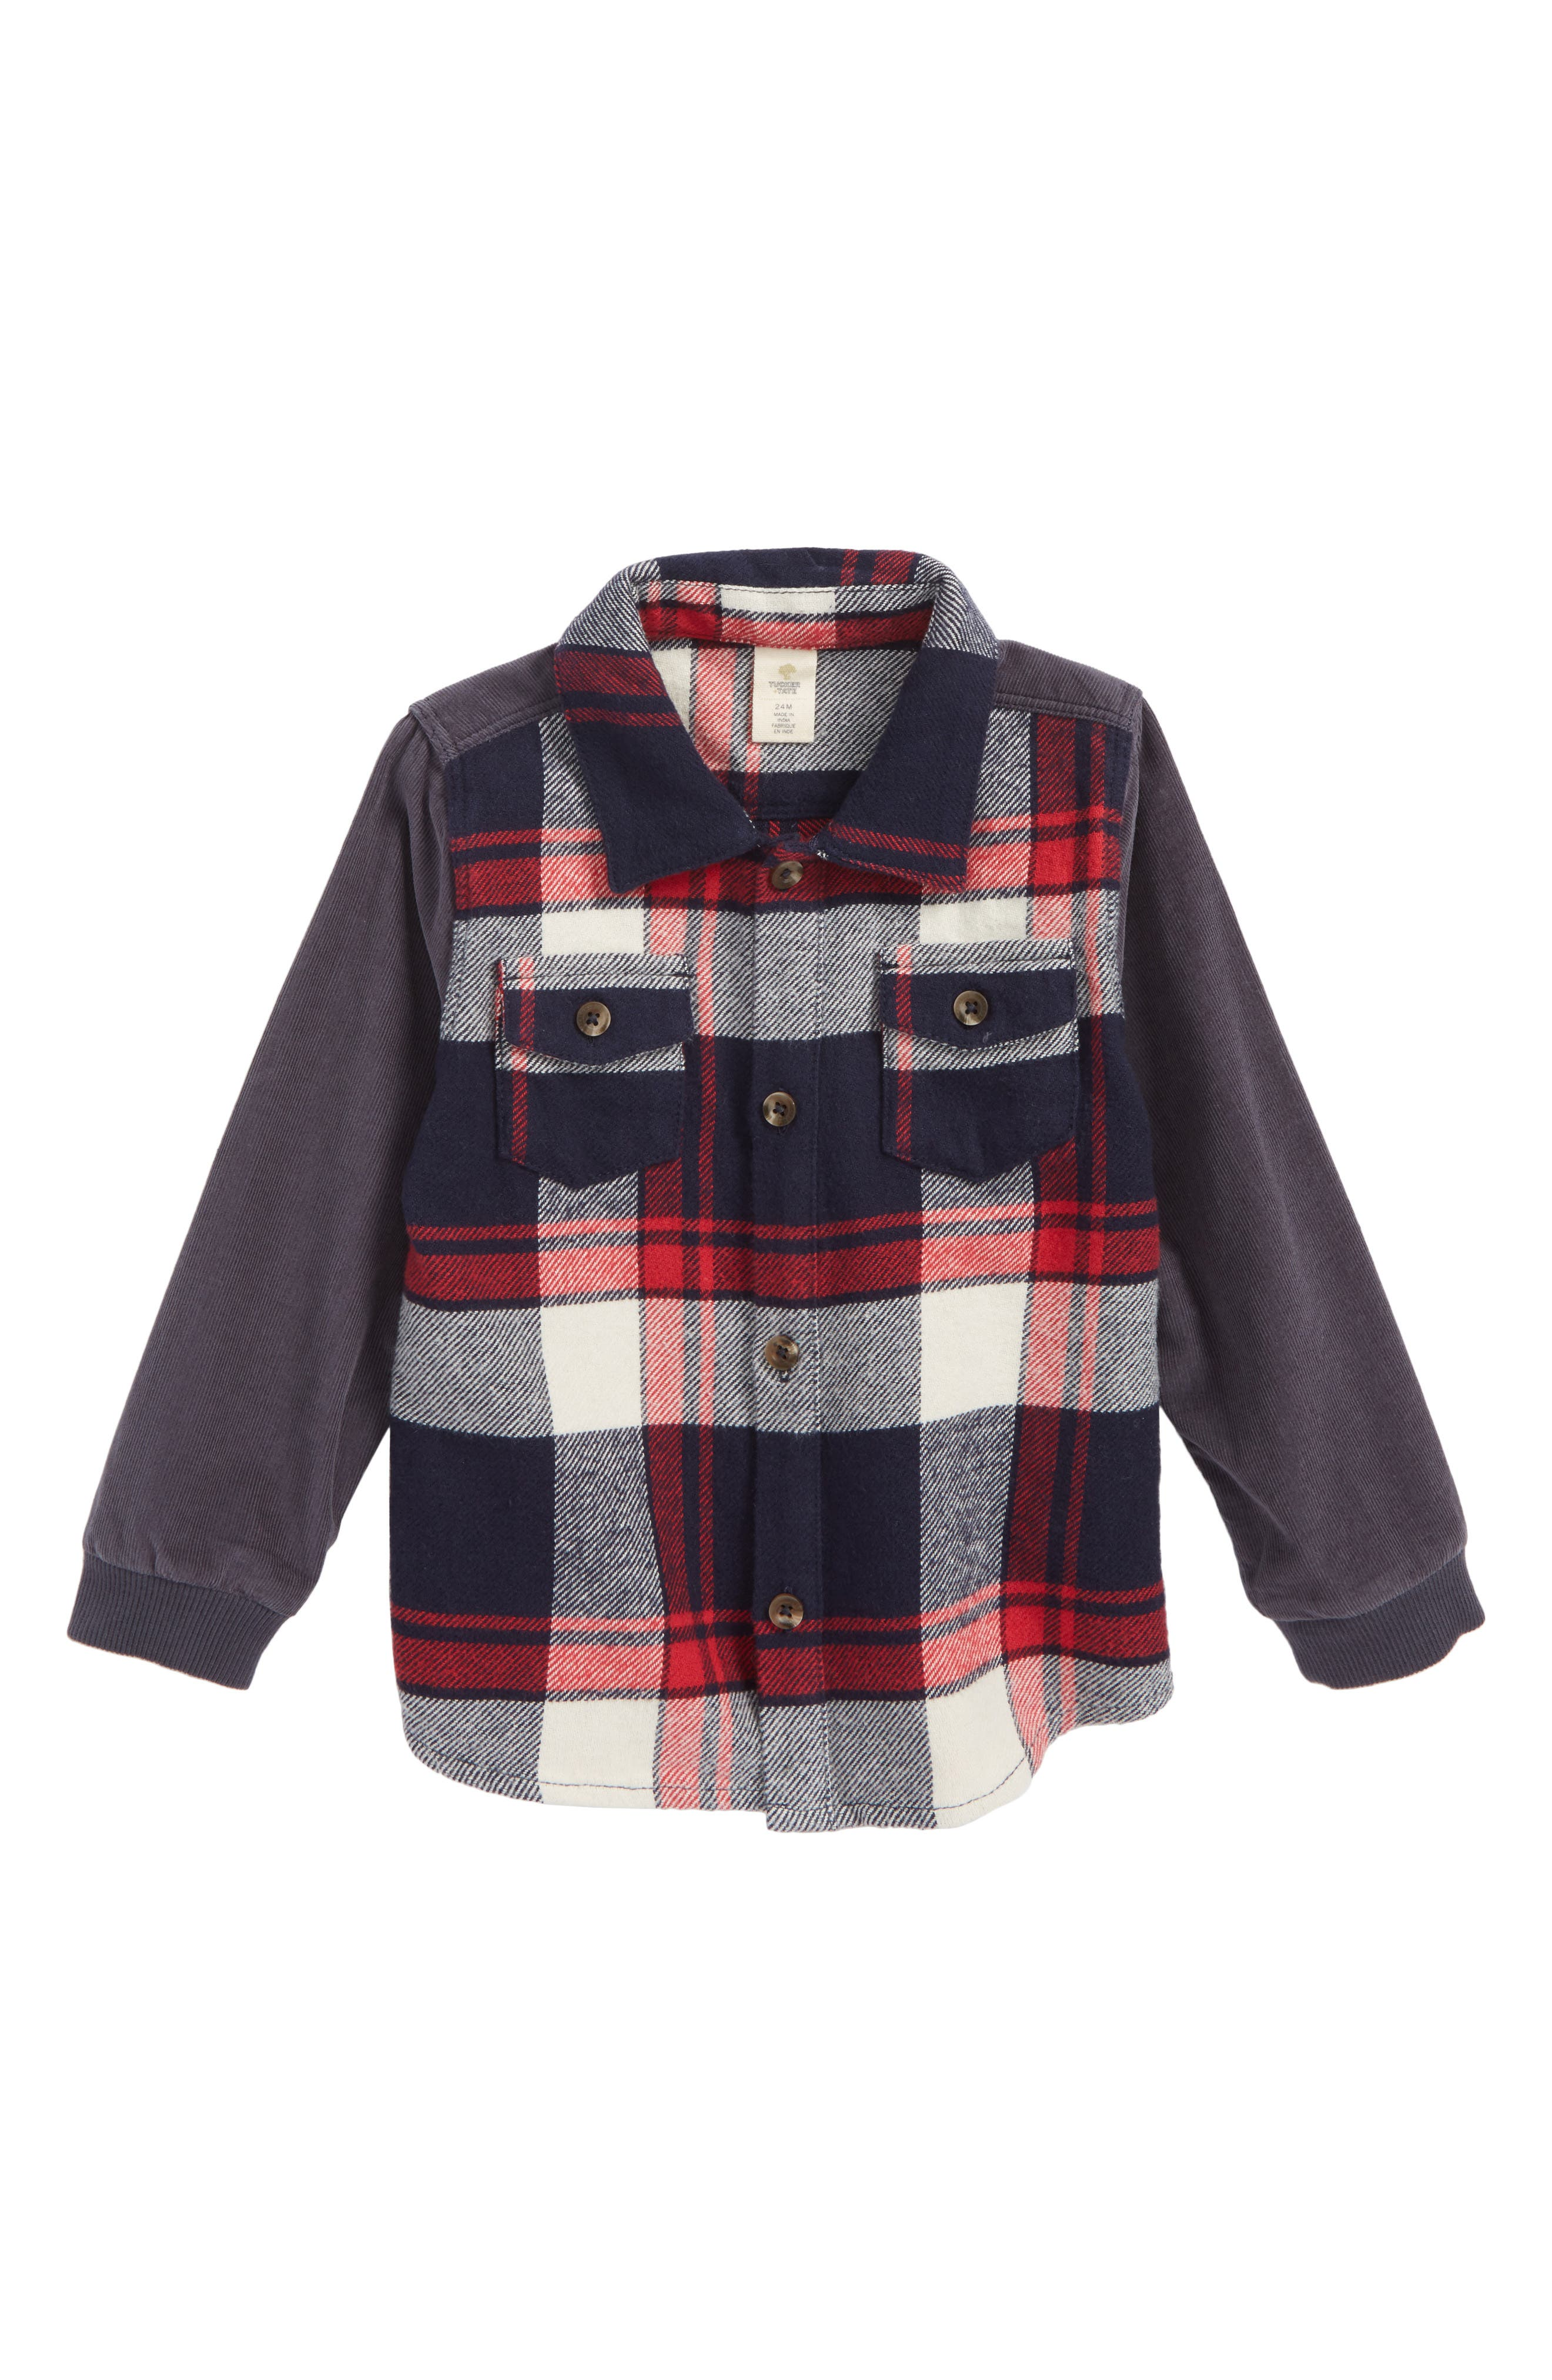 Mixed Media Plaid Shirt,                         Main,                         color, Red Chili- Navy Plaid